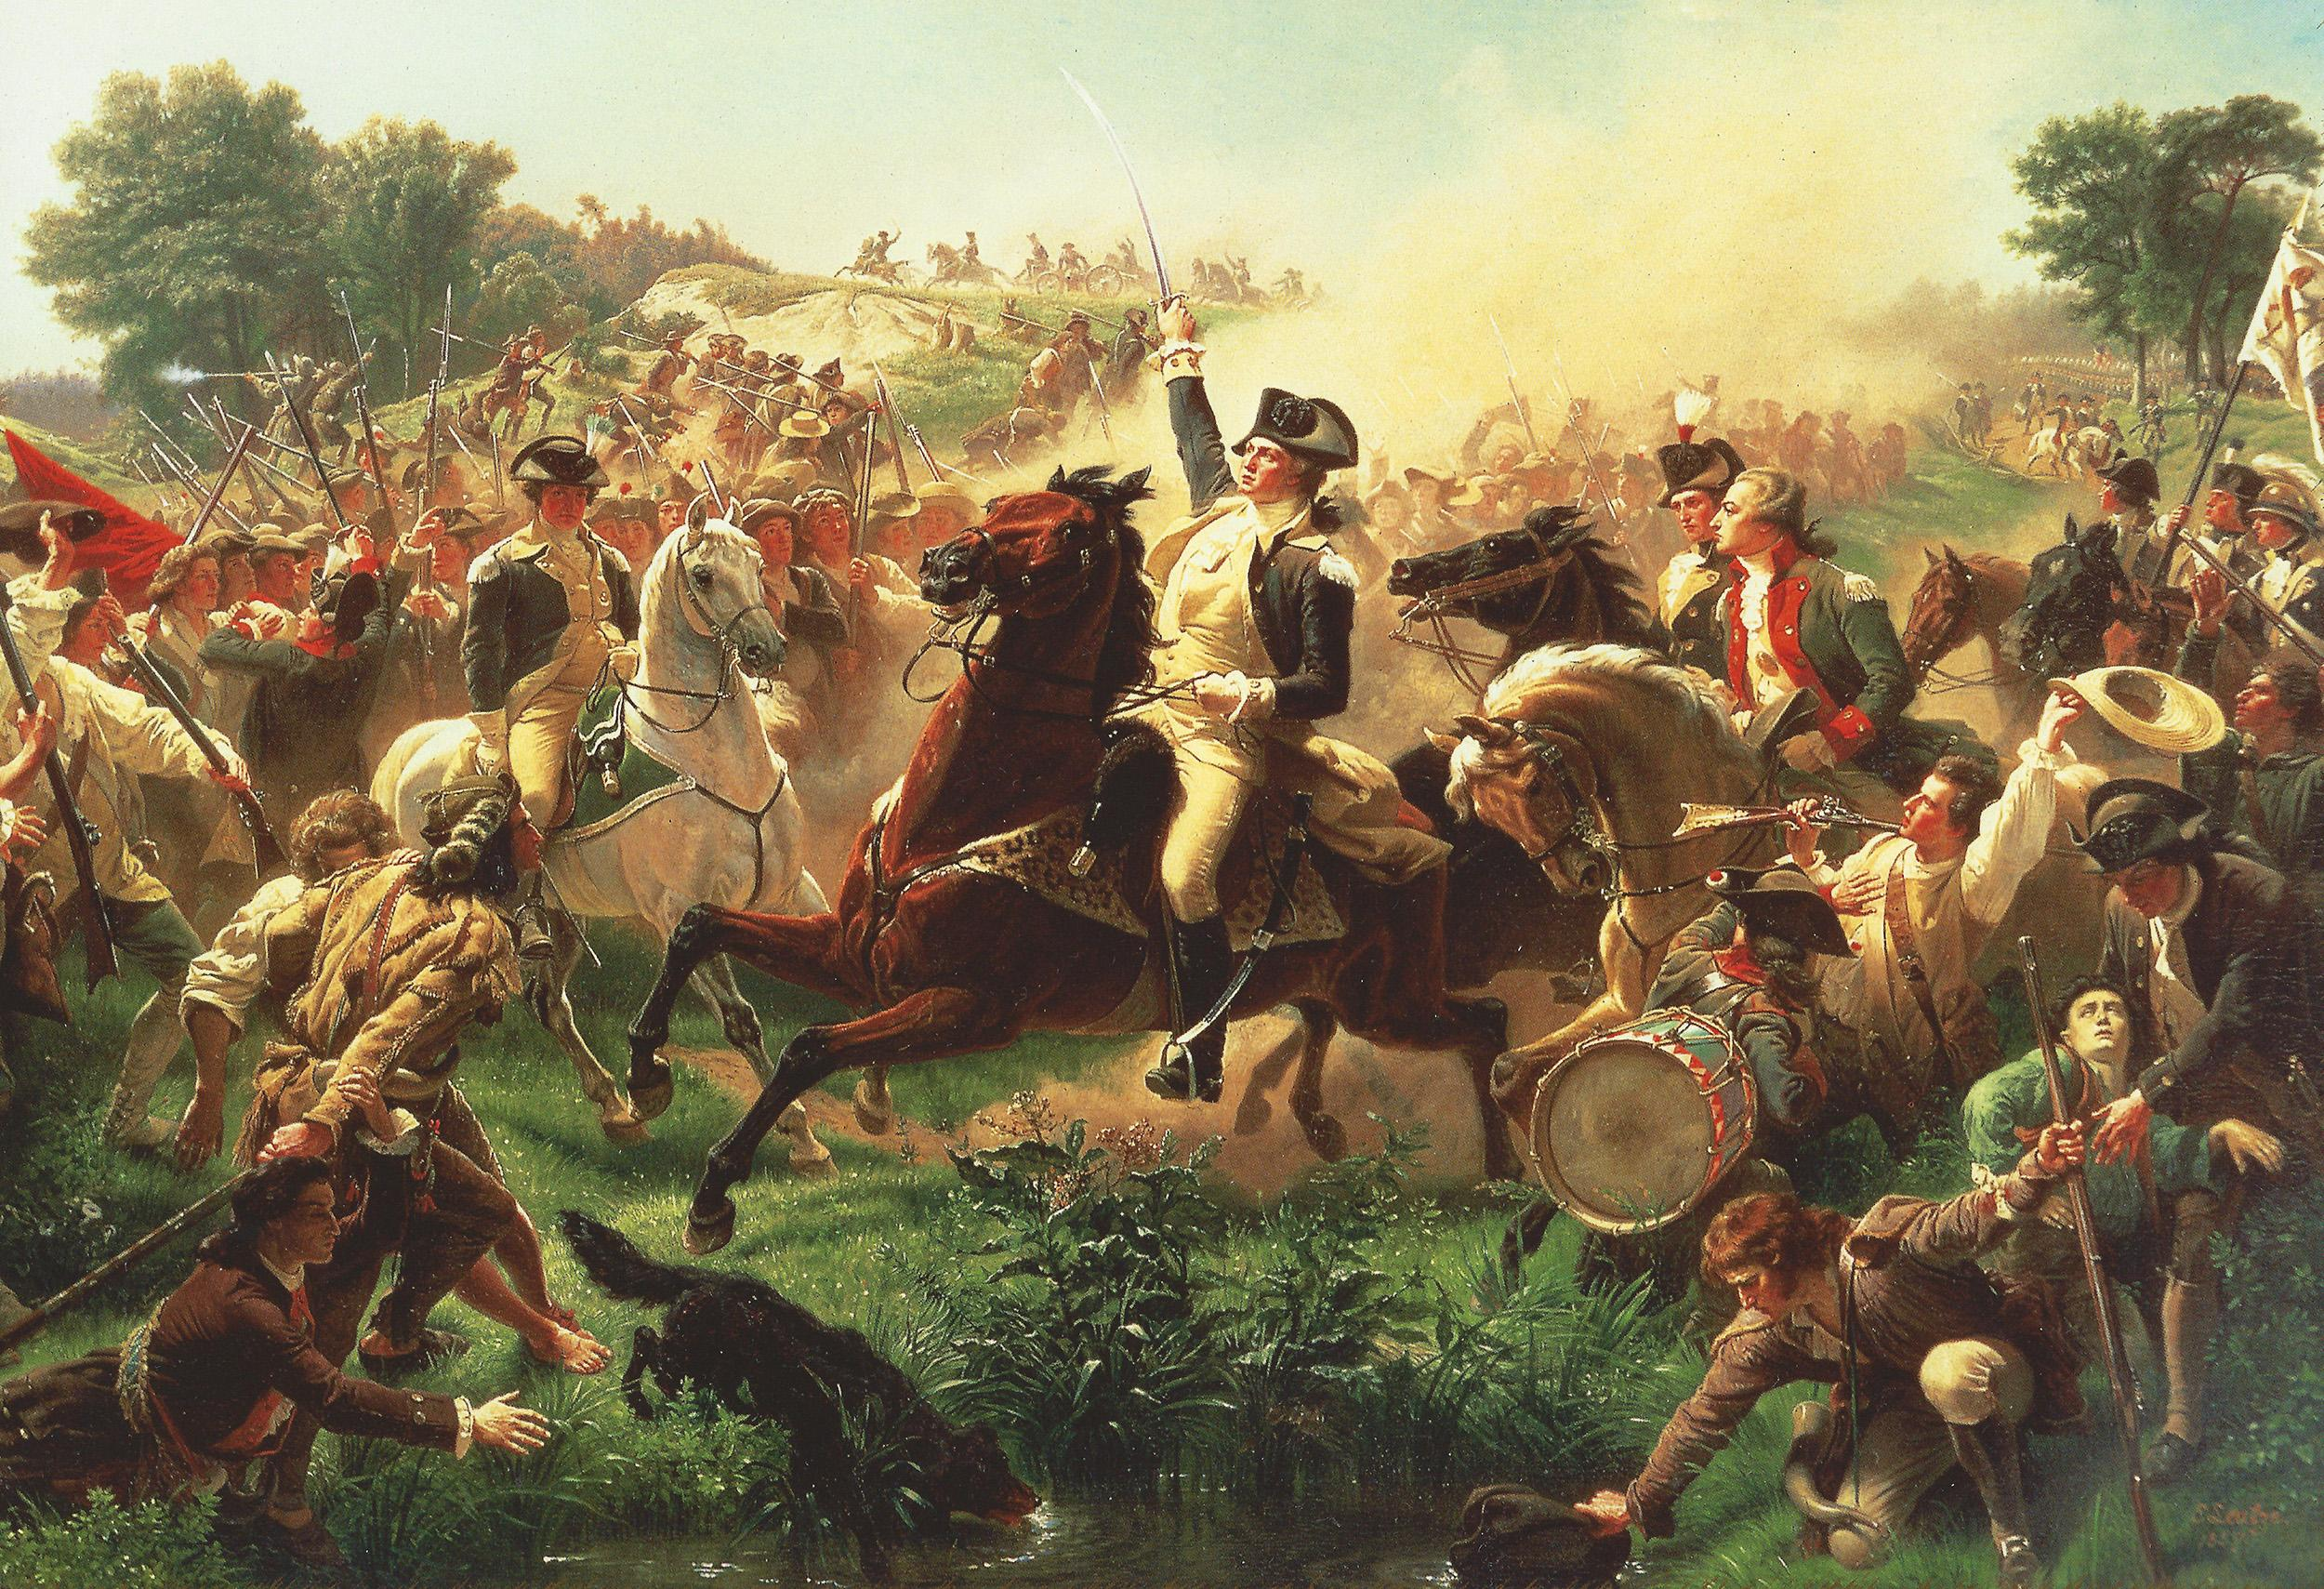 George Washington at the Battle of Monmouth (Emanuel Leutze - 1857 - from the collection of the Monmouth County Historical Association)